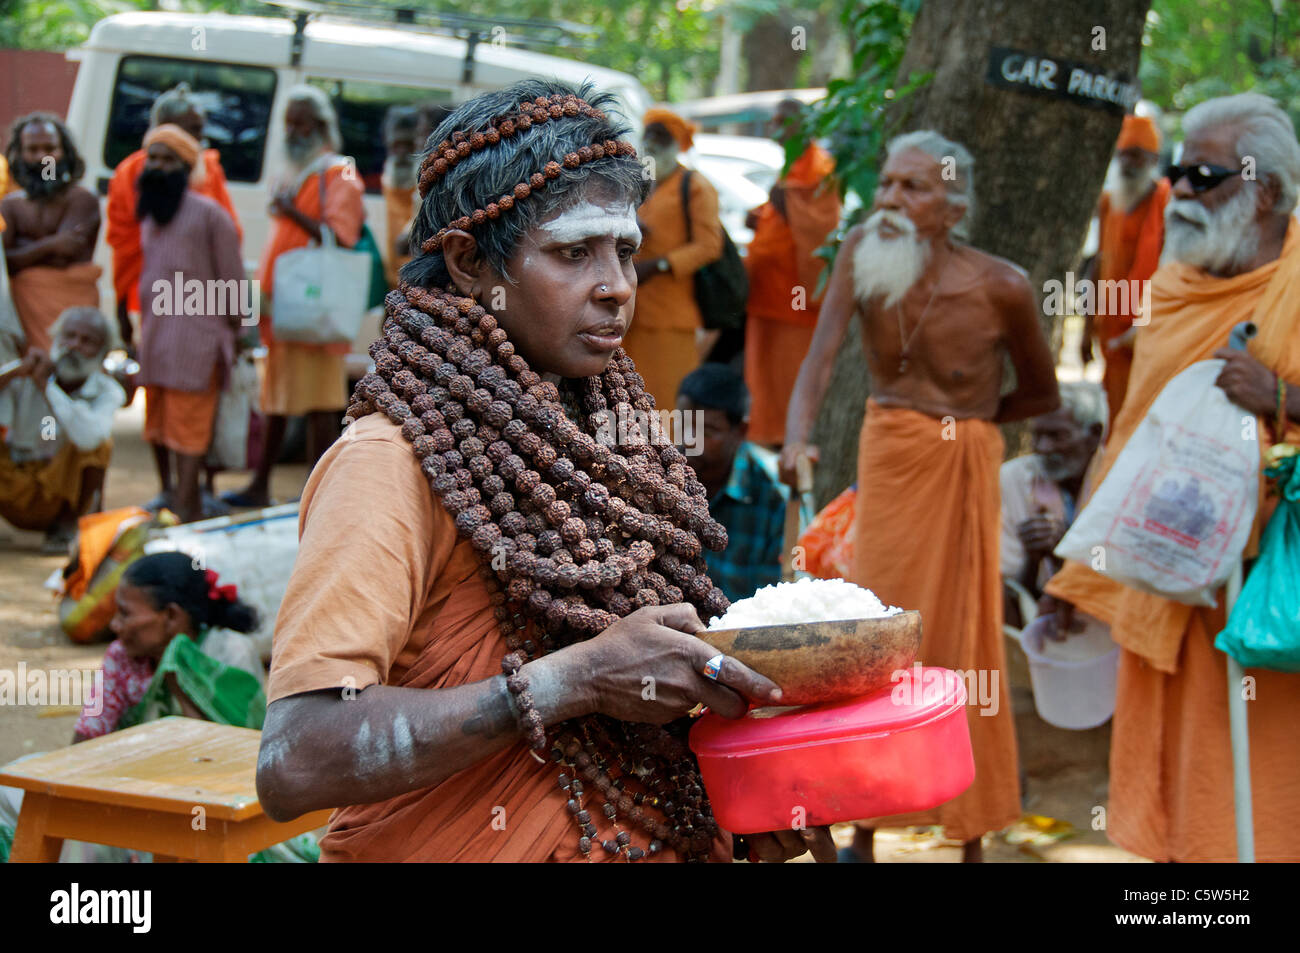 Sadhu with food Sri Ramana Ashram Tiruvannamalai Tamil Nadu South India - Stock Image